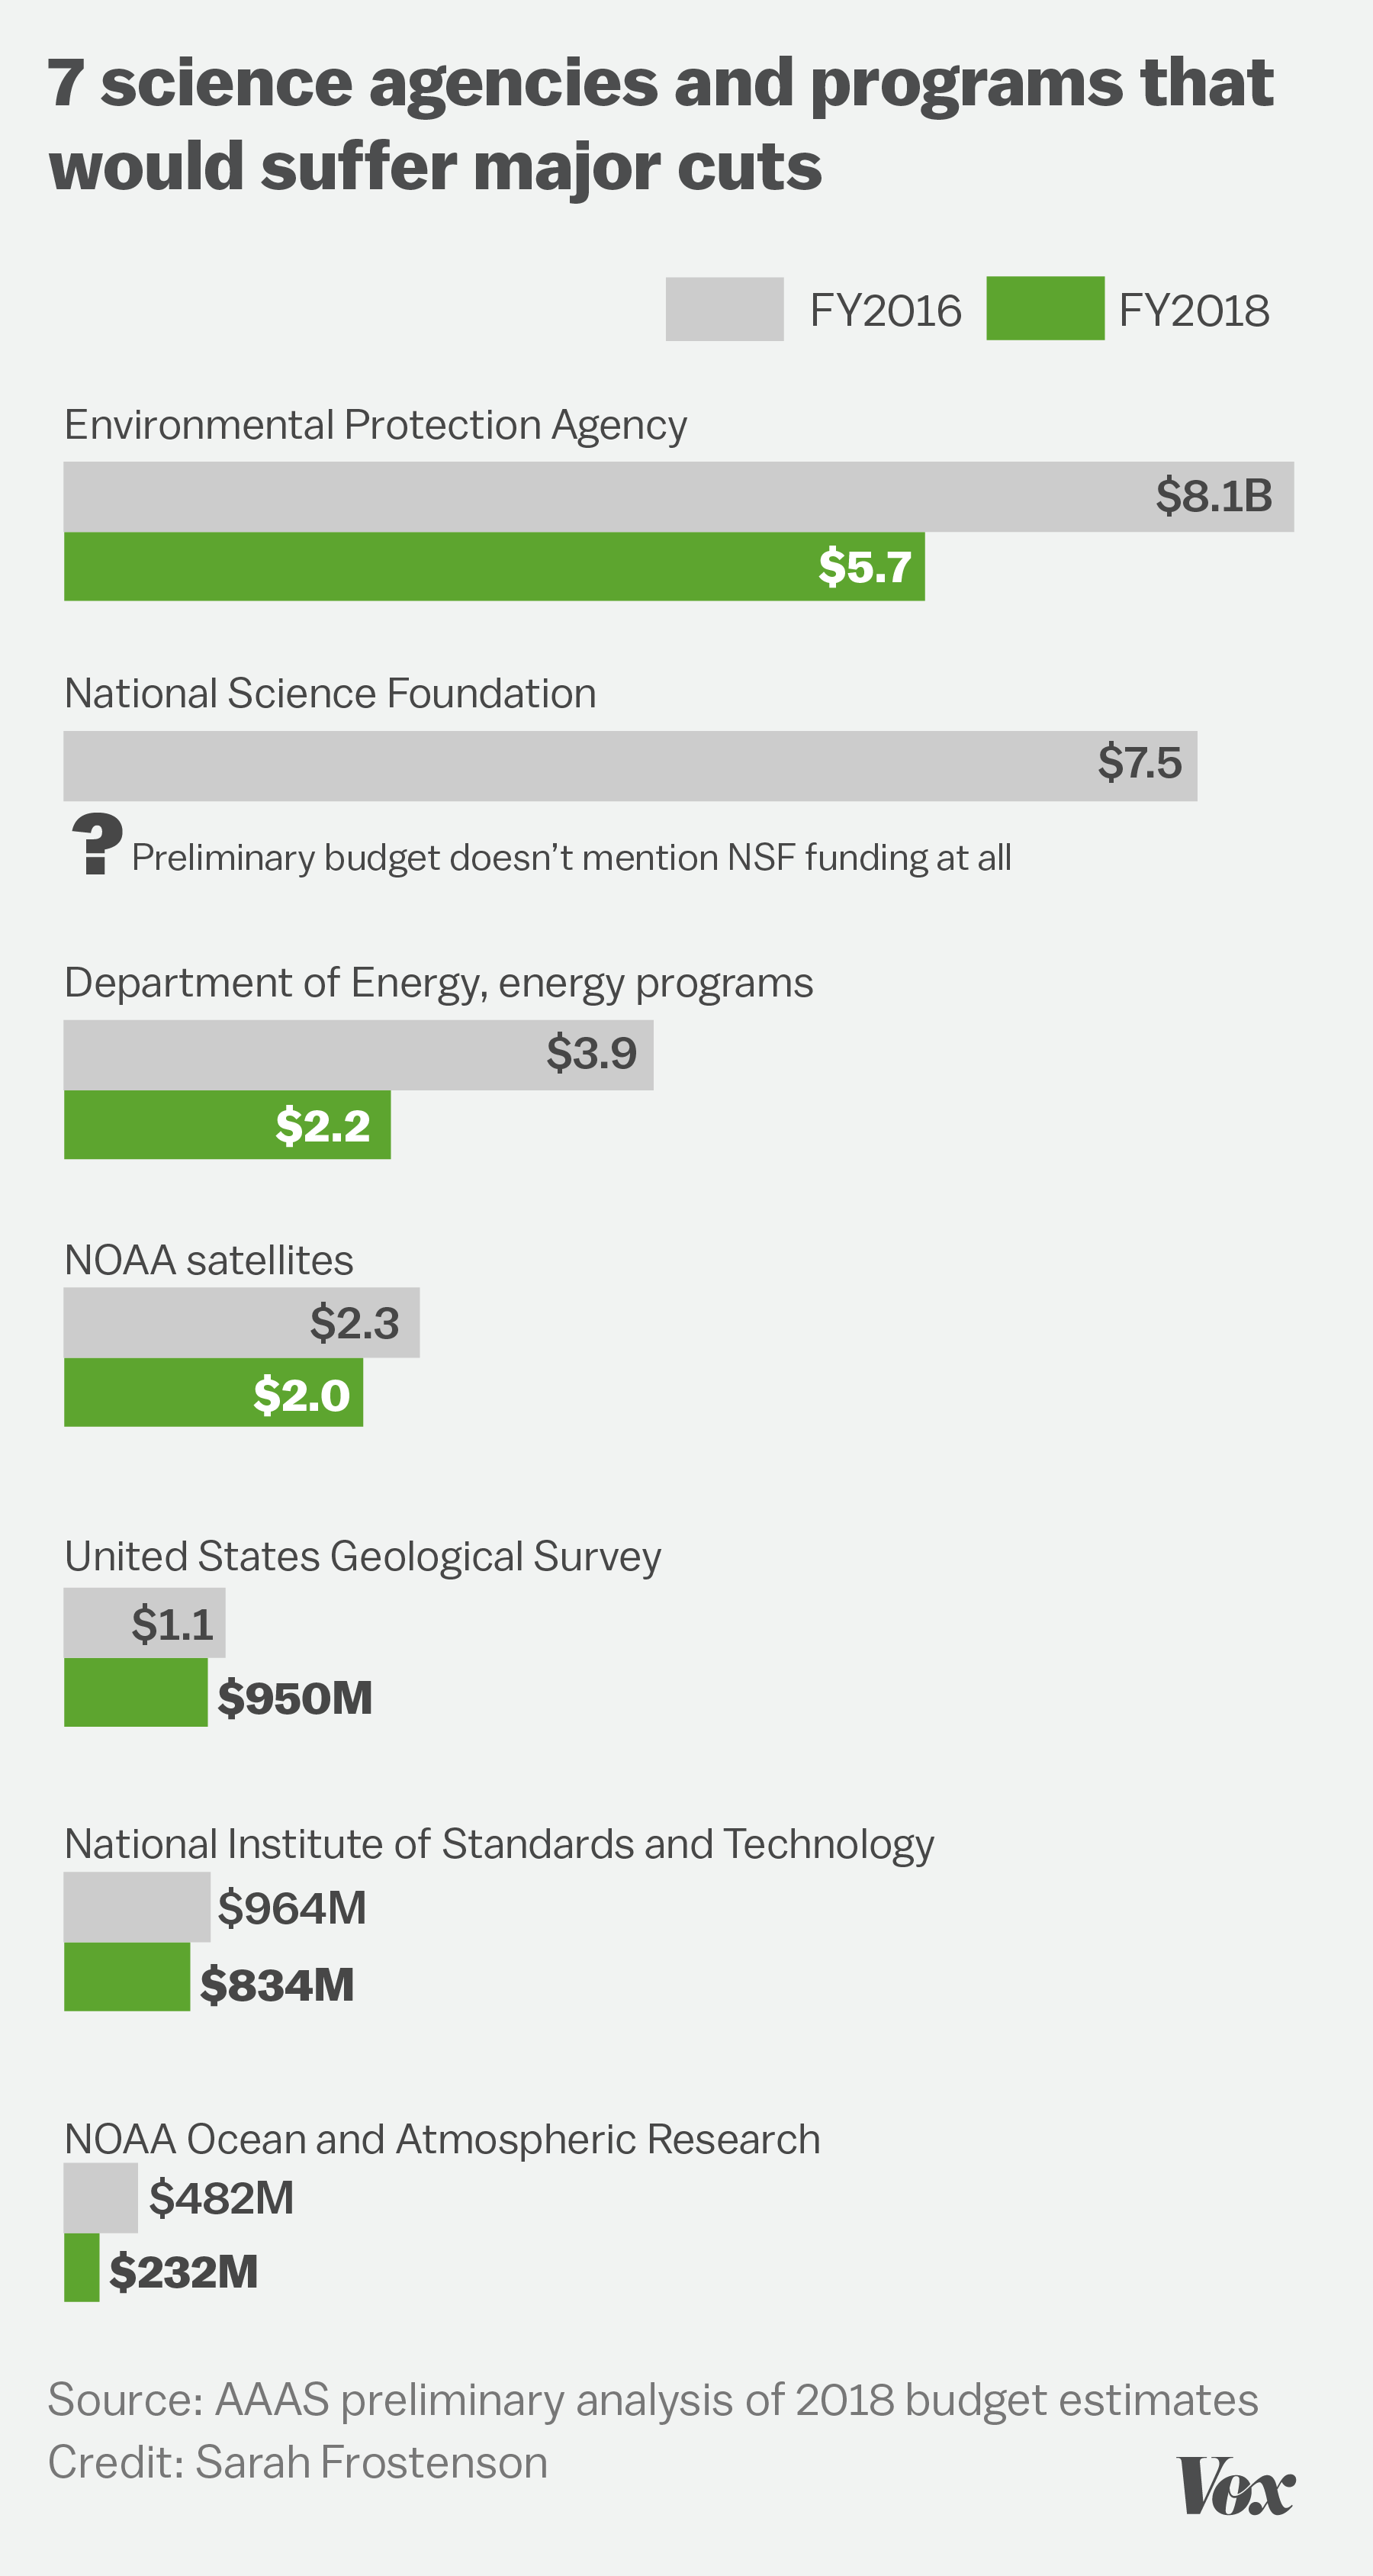 Chart of key science programs and agencies that would suffer major funding cuts